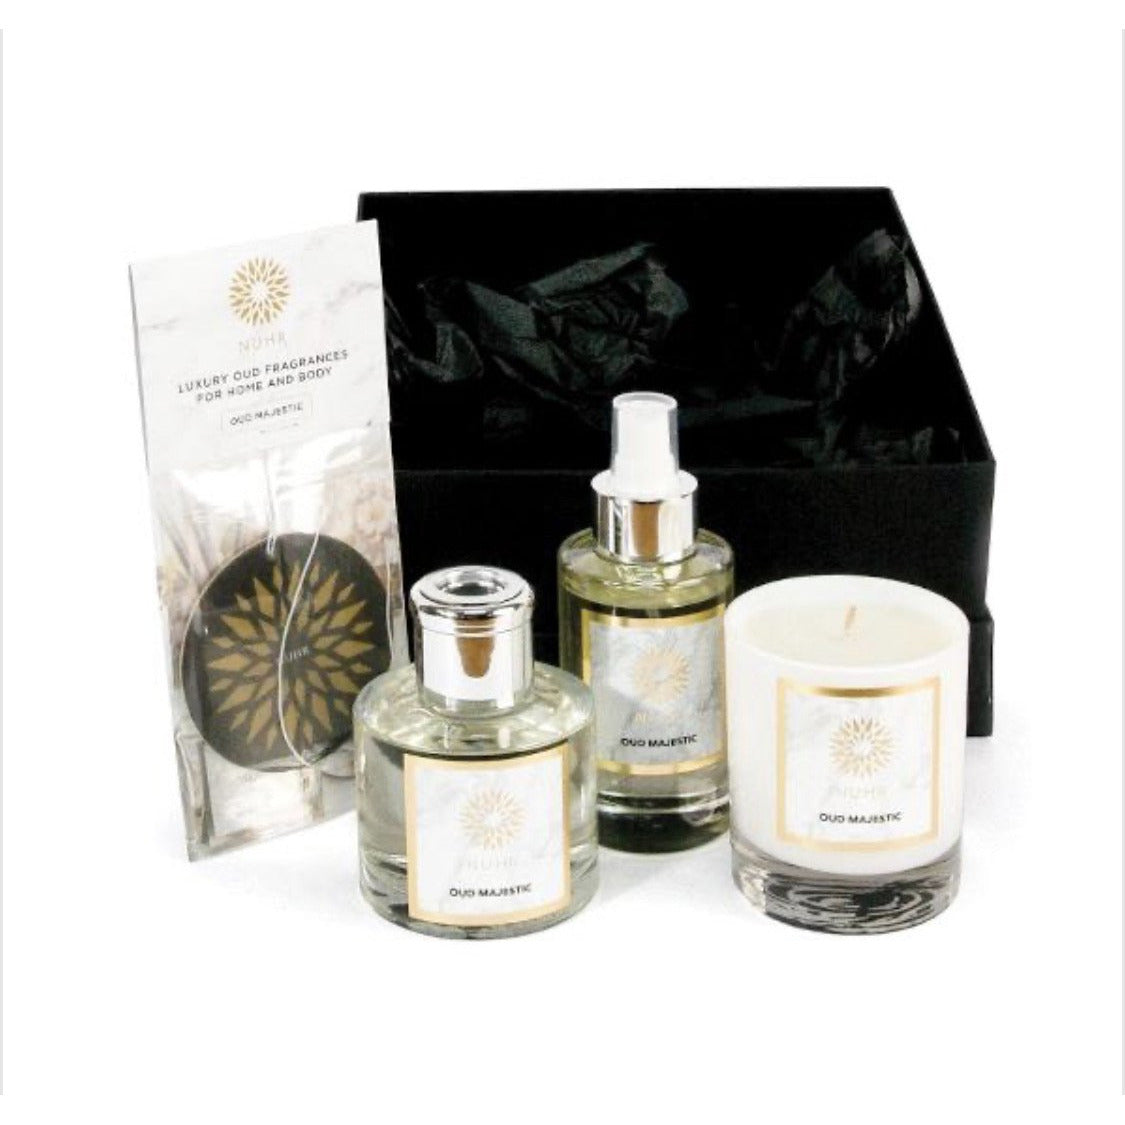 Complete Luxury Home Fragrance Gift Set - Oud Arabia